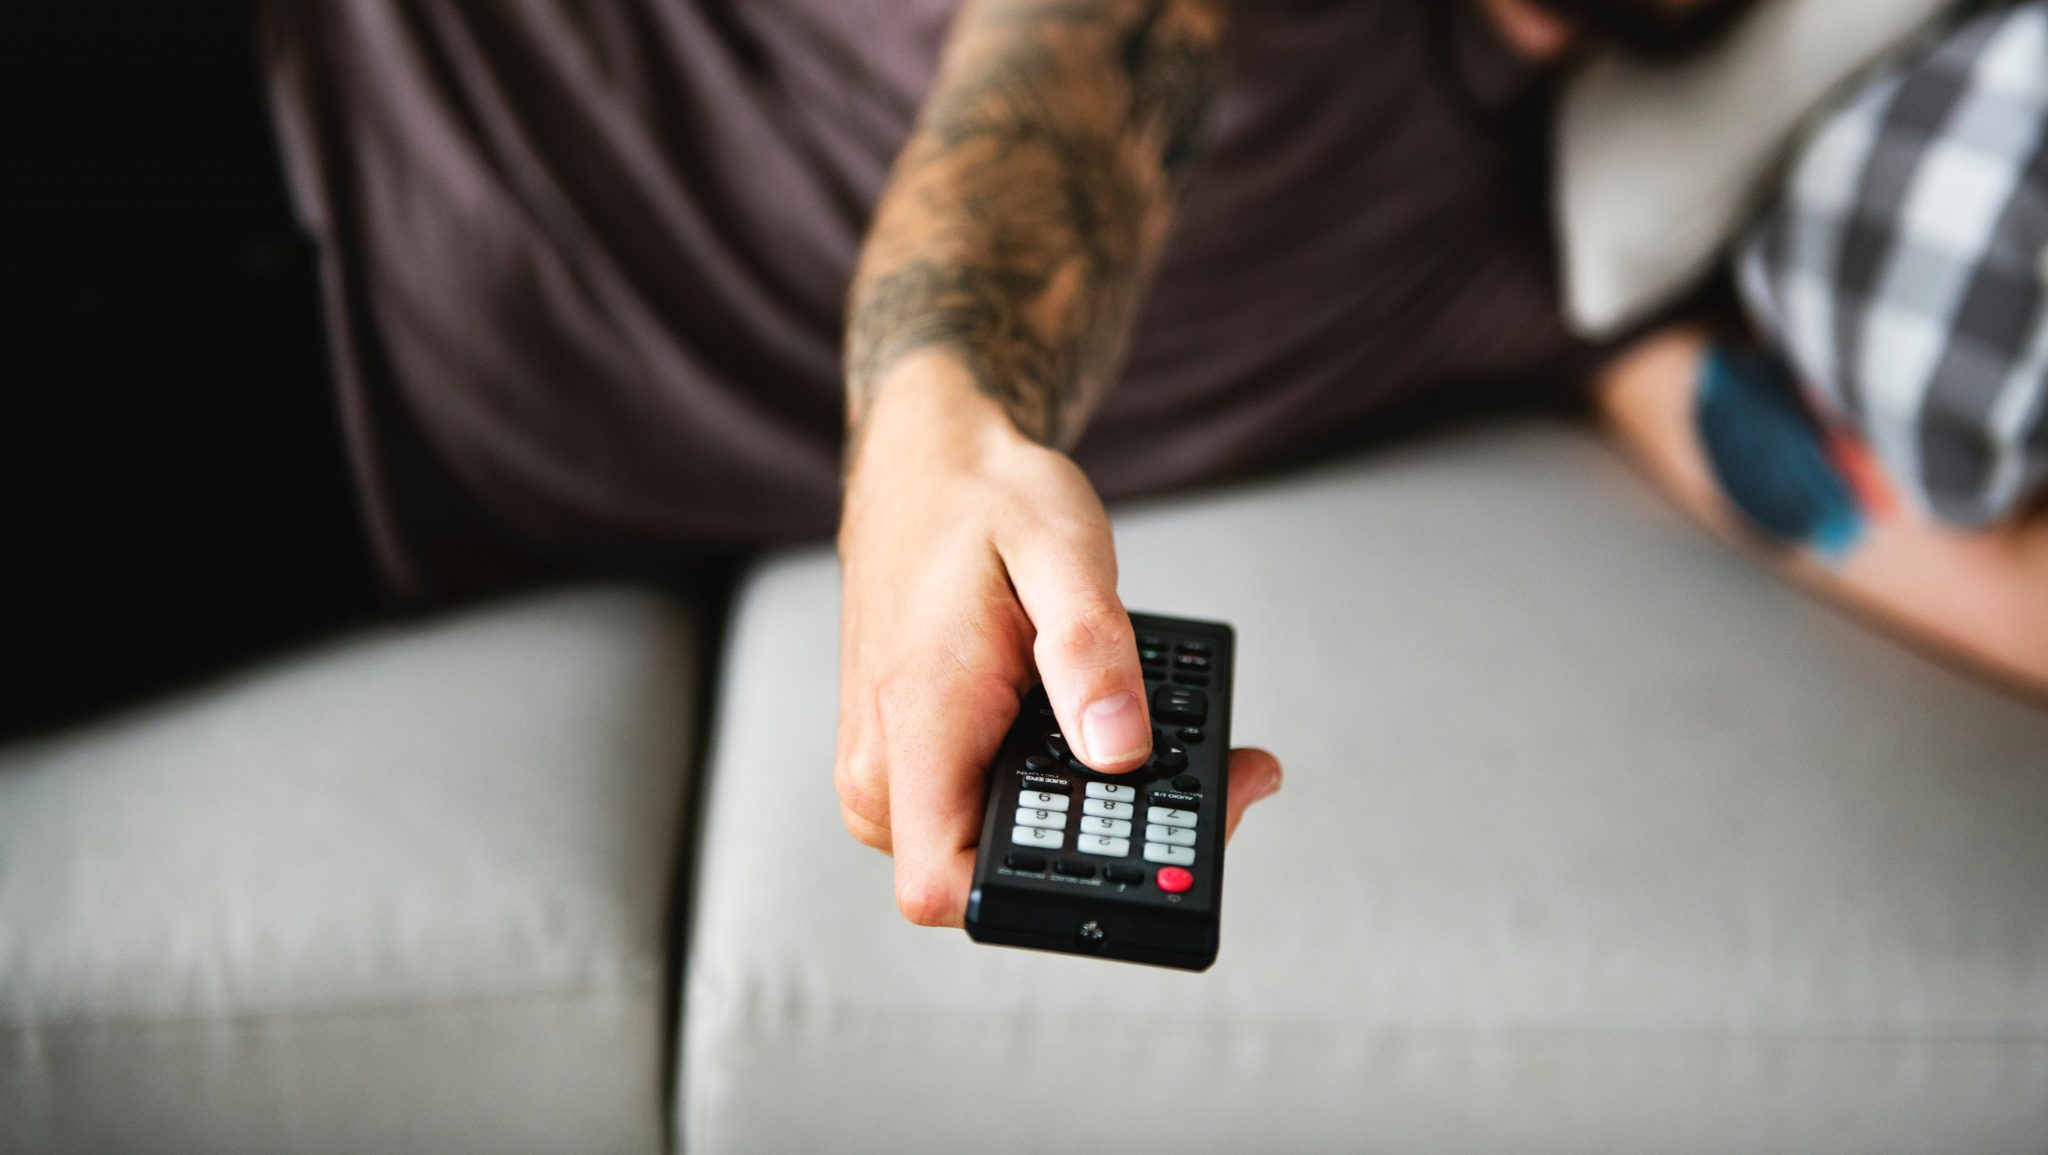 man with tattooed arm laying on a couch and using a remote control